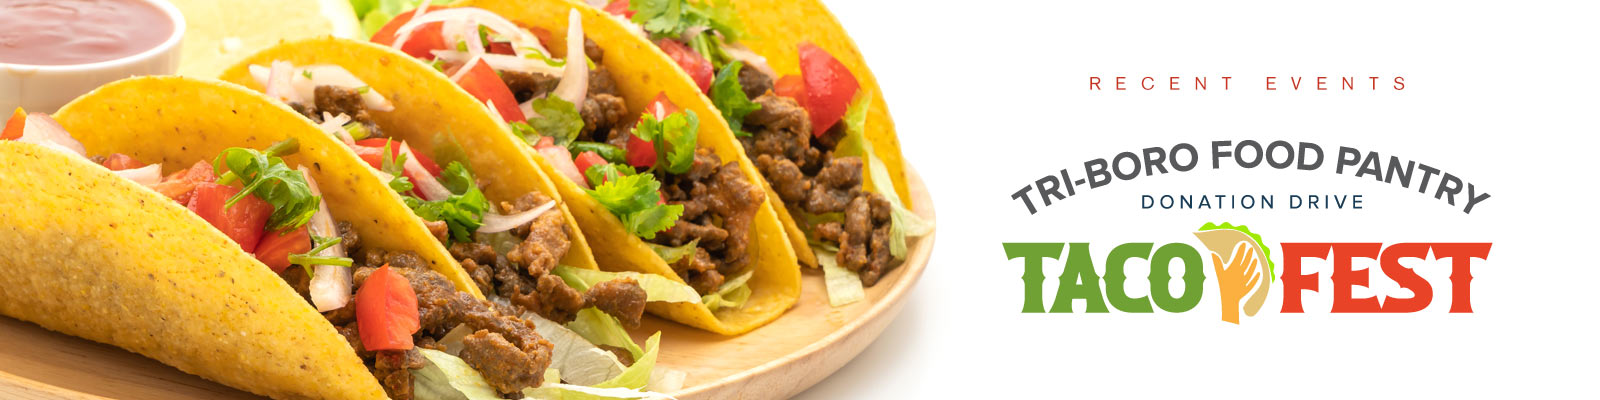 Triboro Food Pantry Taco Event